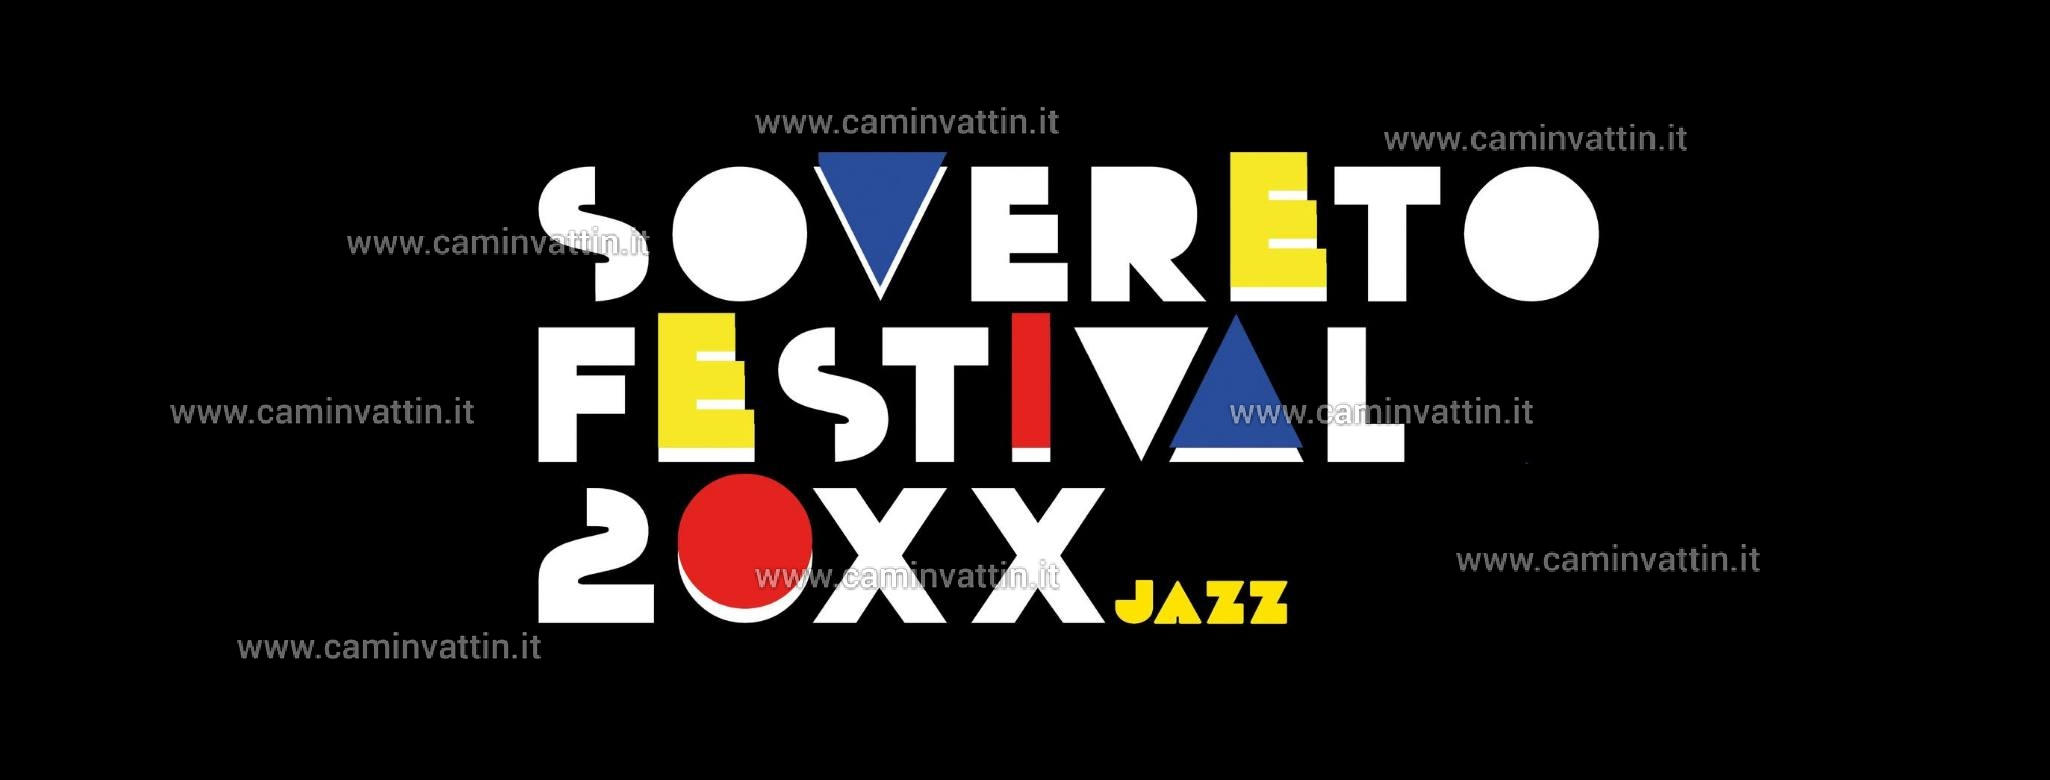 sovereto festival 2020 jazz